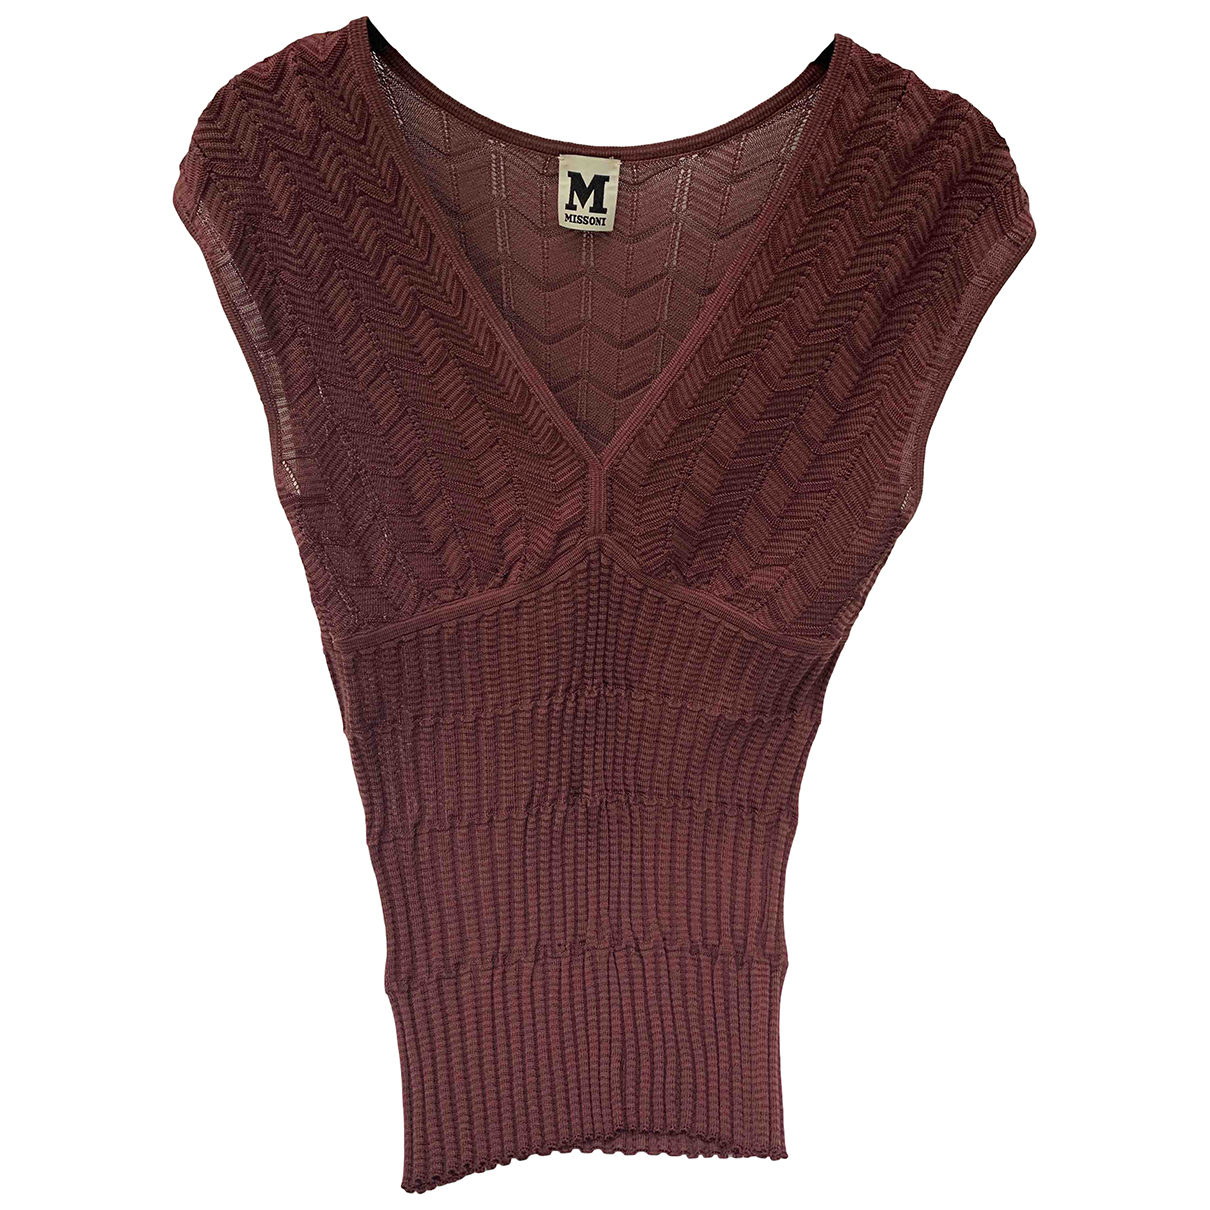 M Missoni N Burgundy  top for Women 38 IT